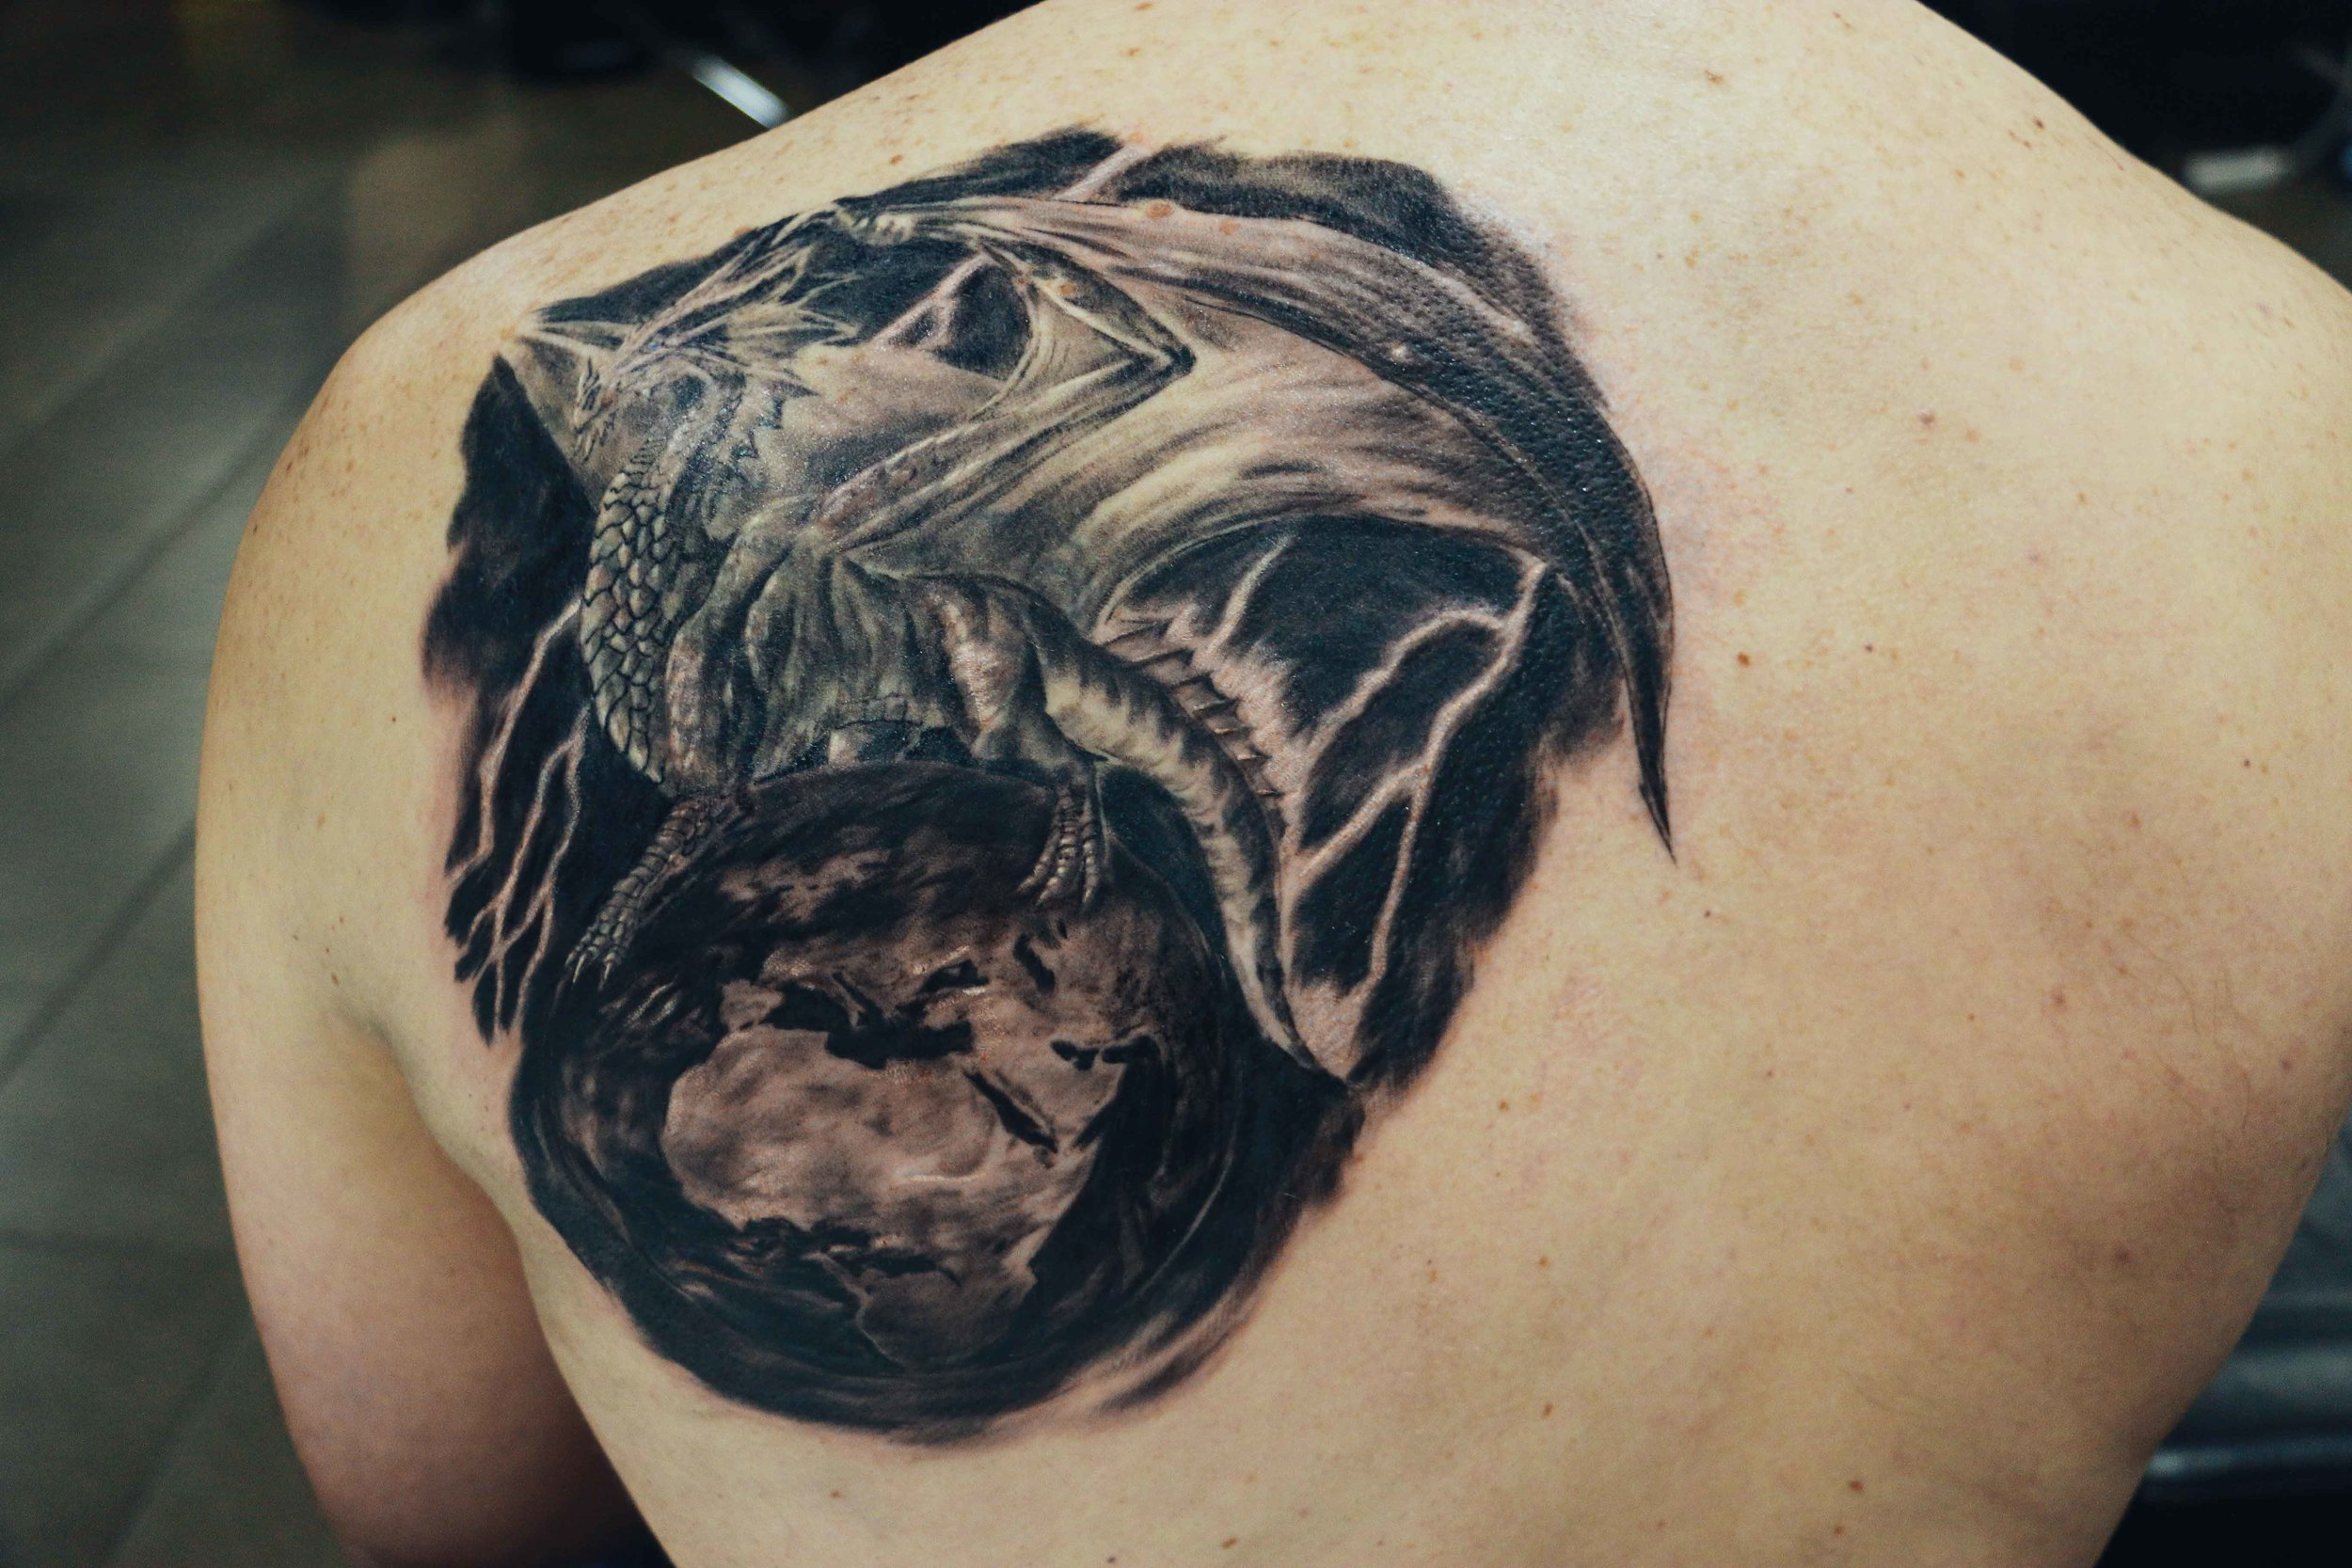 fyink-tattoos-aprshoplife-42.jpg